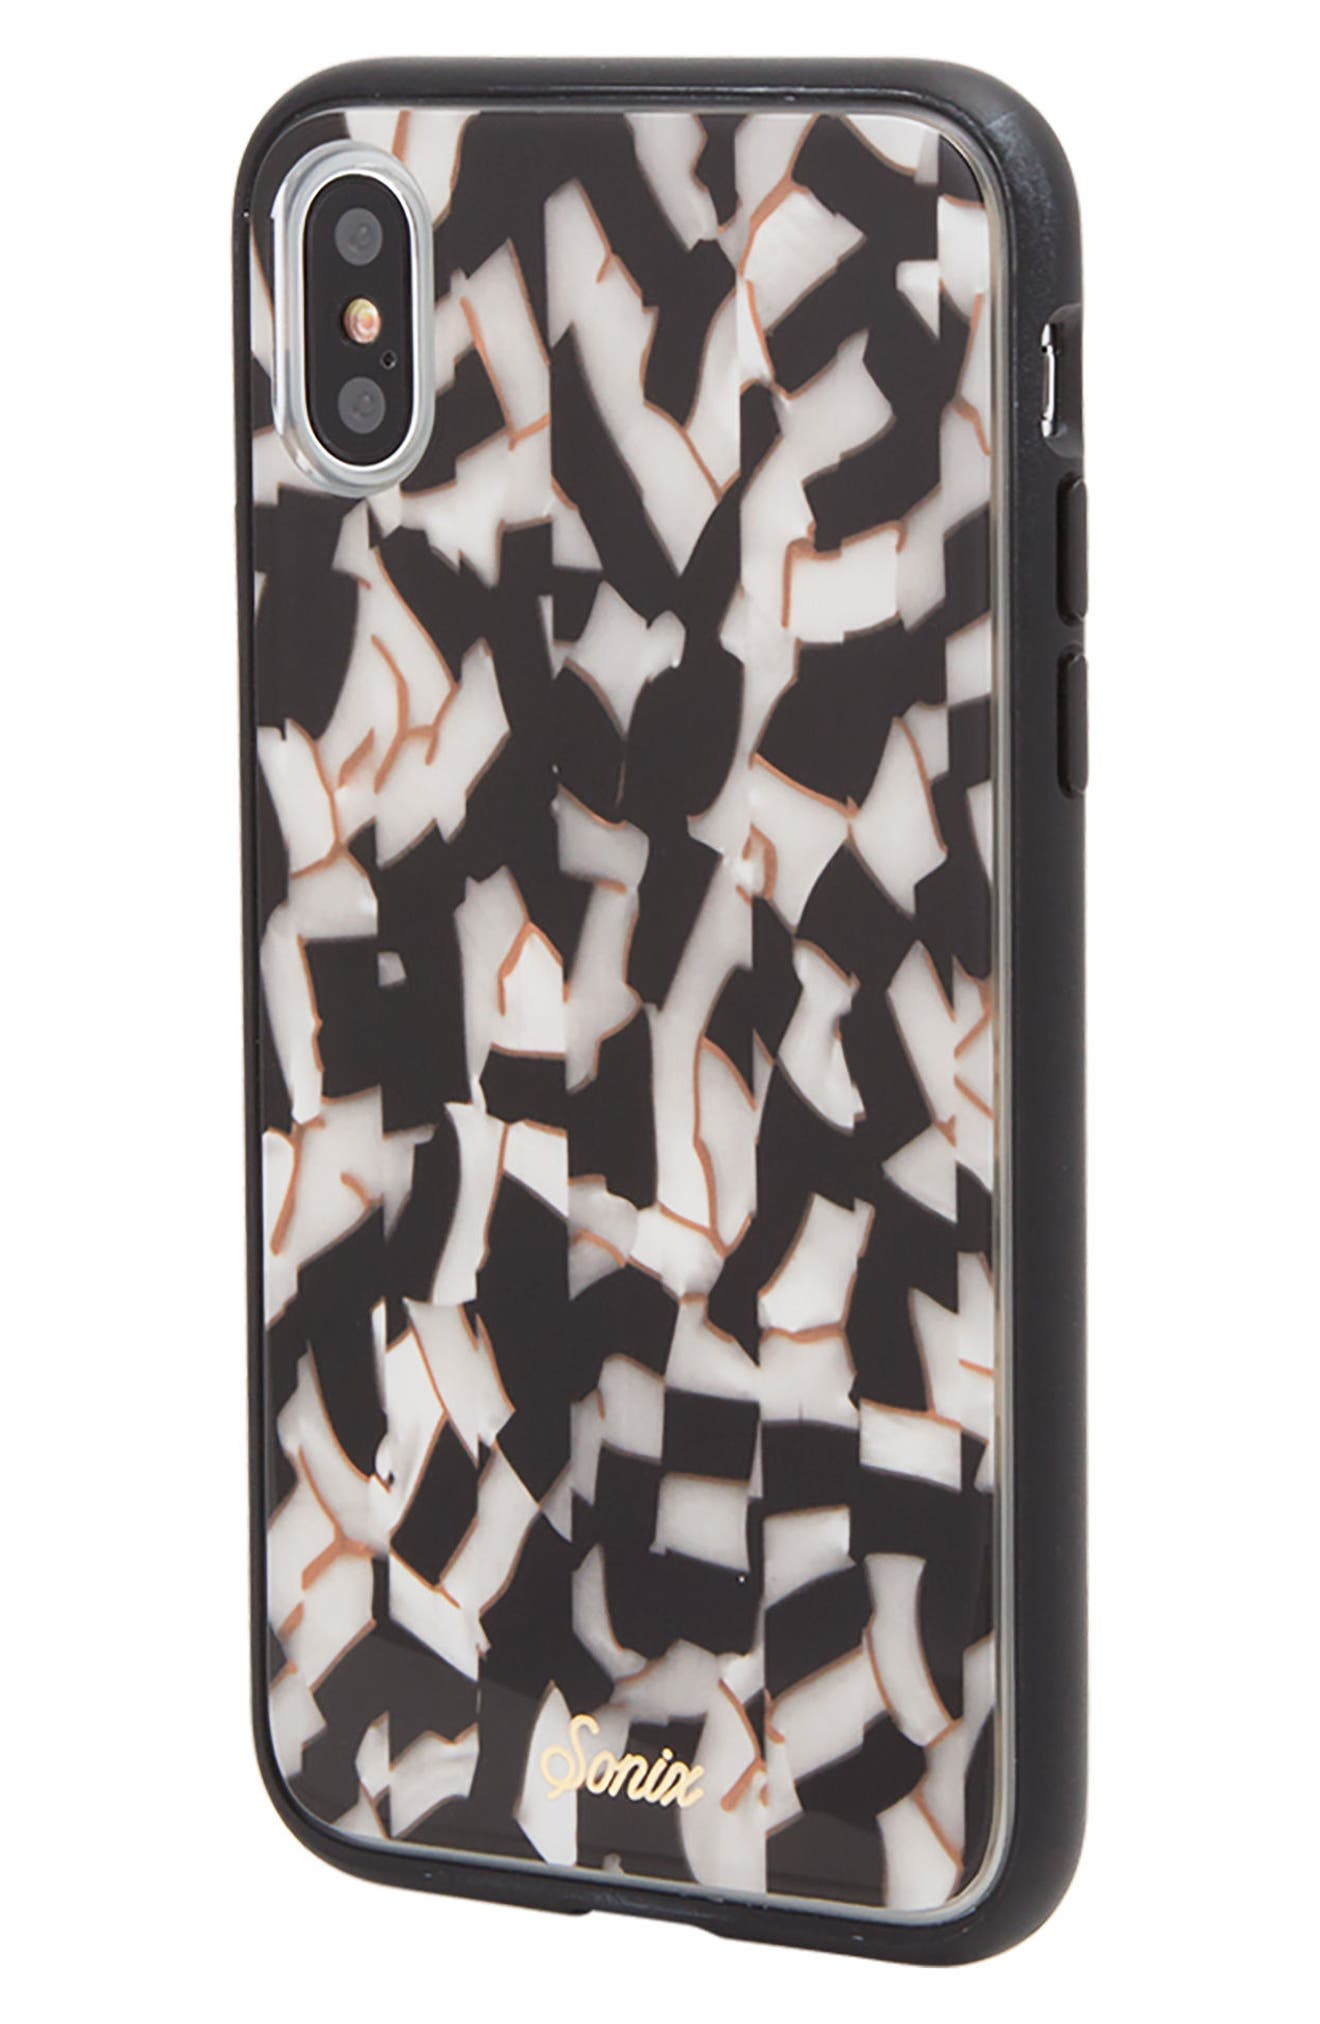 Pearlescent Black iPhone X Case,                             Alternate thumbnail 2, color,                             Black/ White